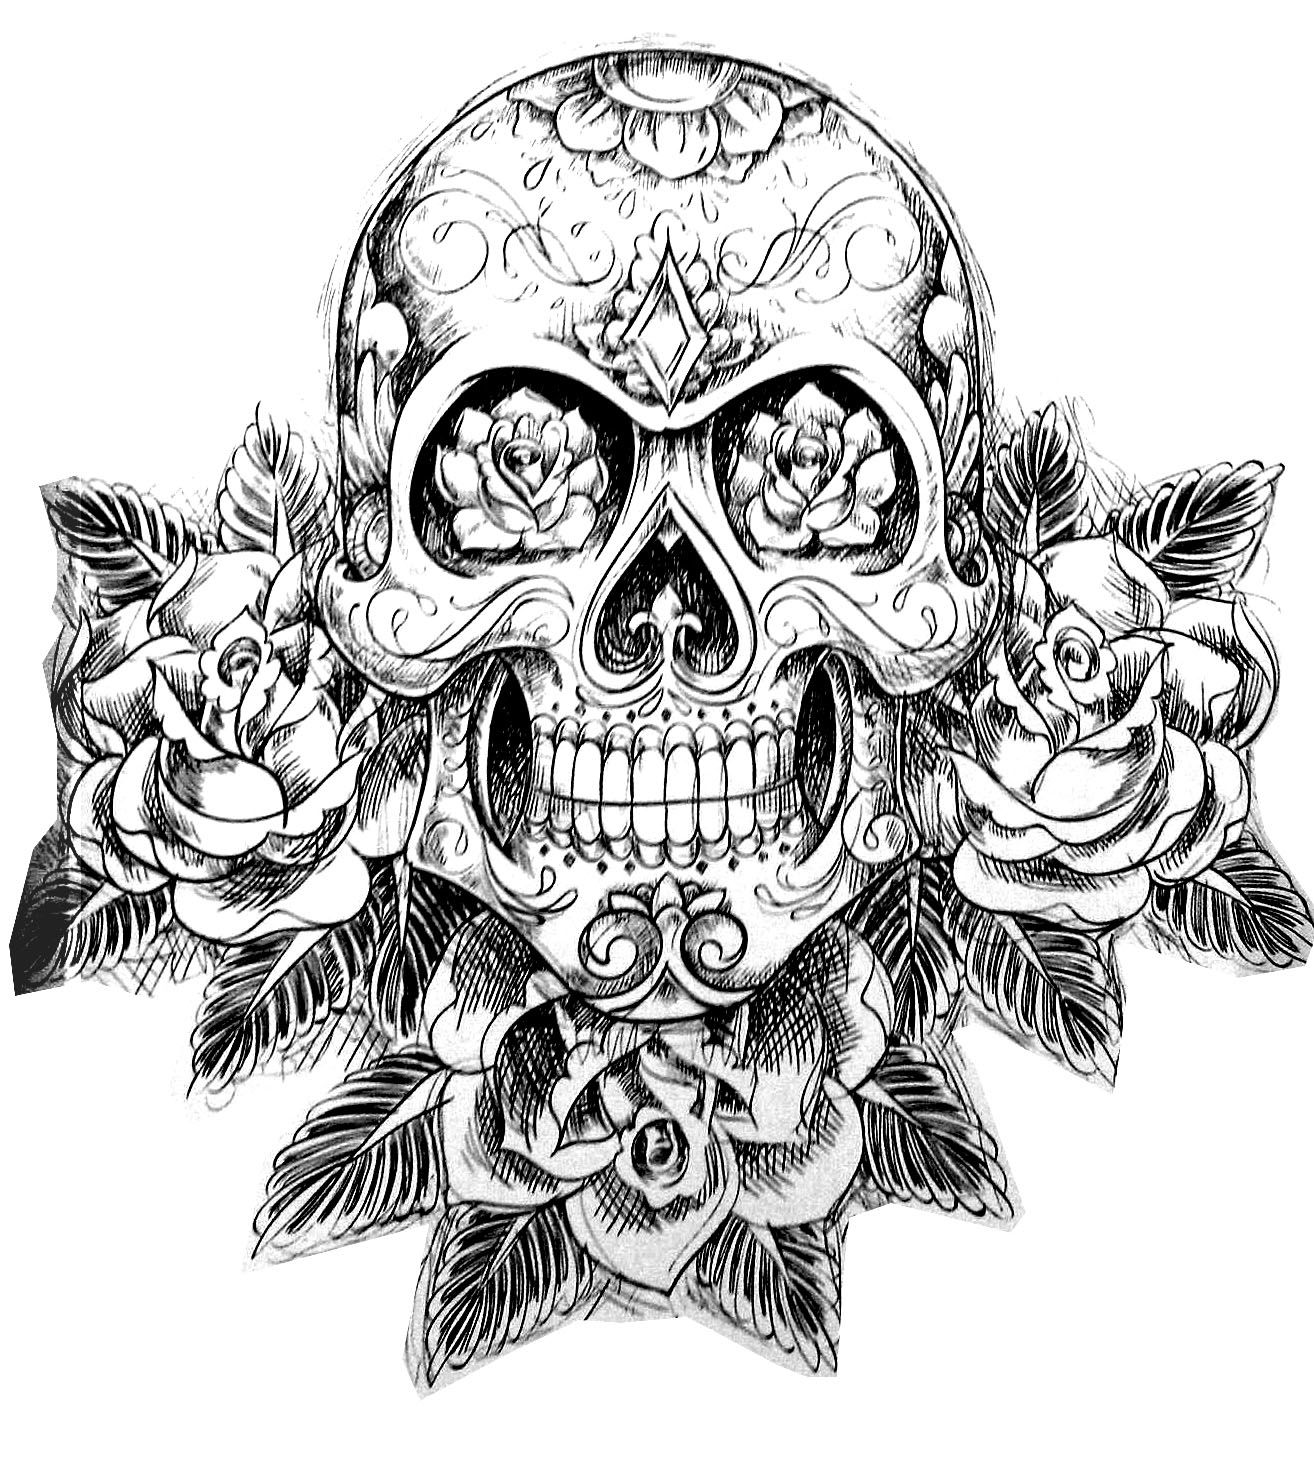 Free Coloring Page Tatouage Skull Skeleton Magnificient Tatoo Of A Accompanied By Roses And Other Plants With Many Details Very Original